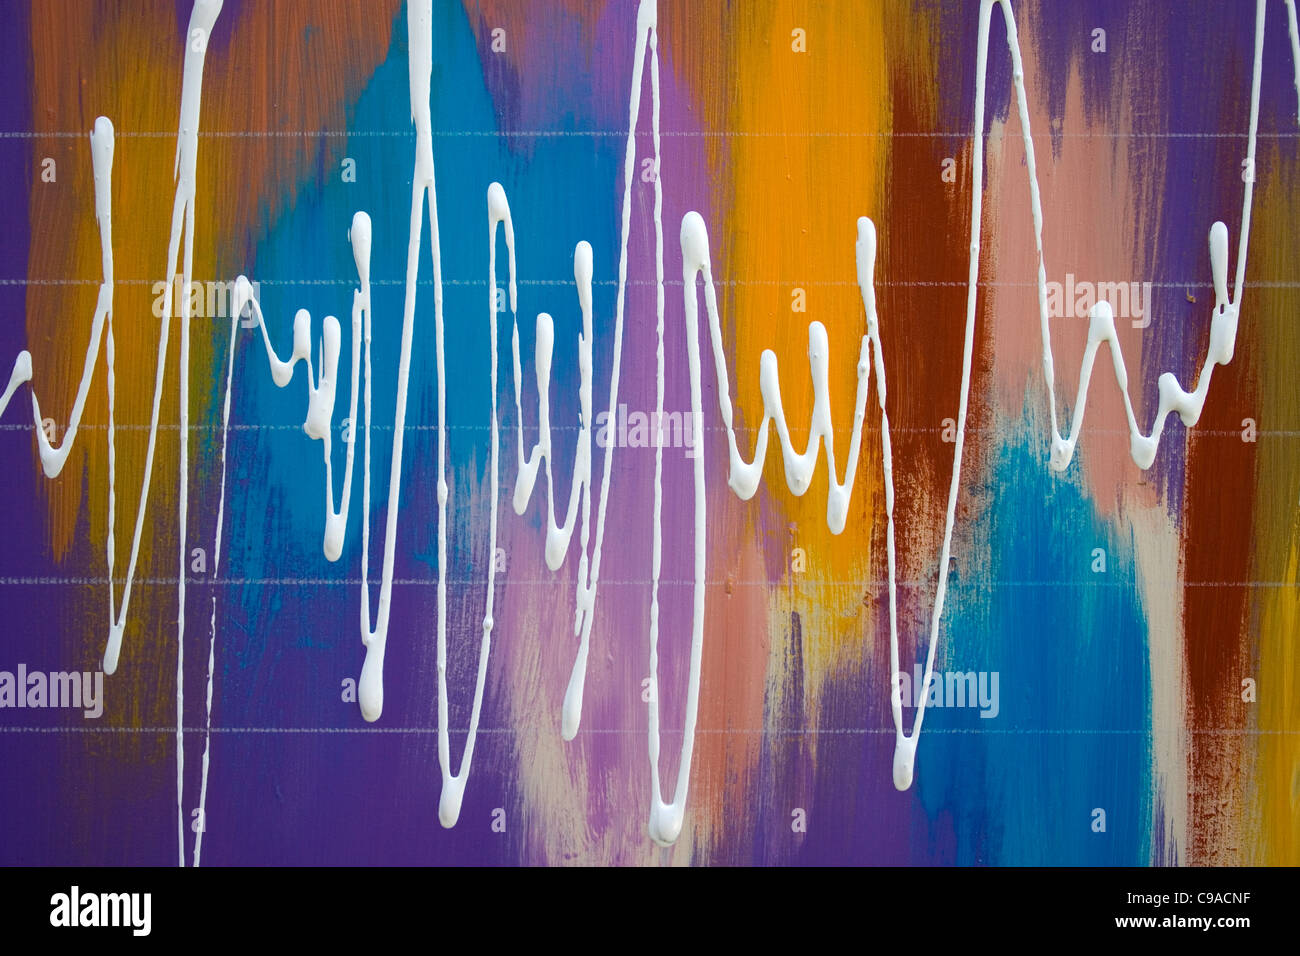 Signal Mark #3A - Stock Image